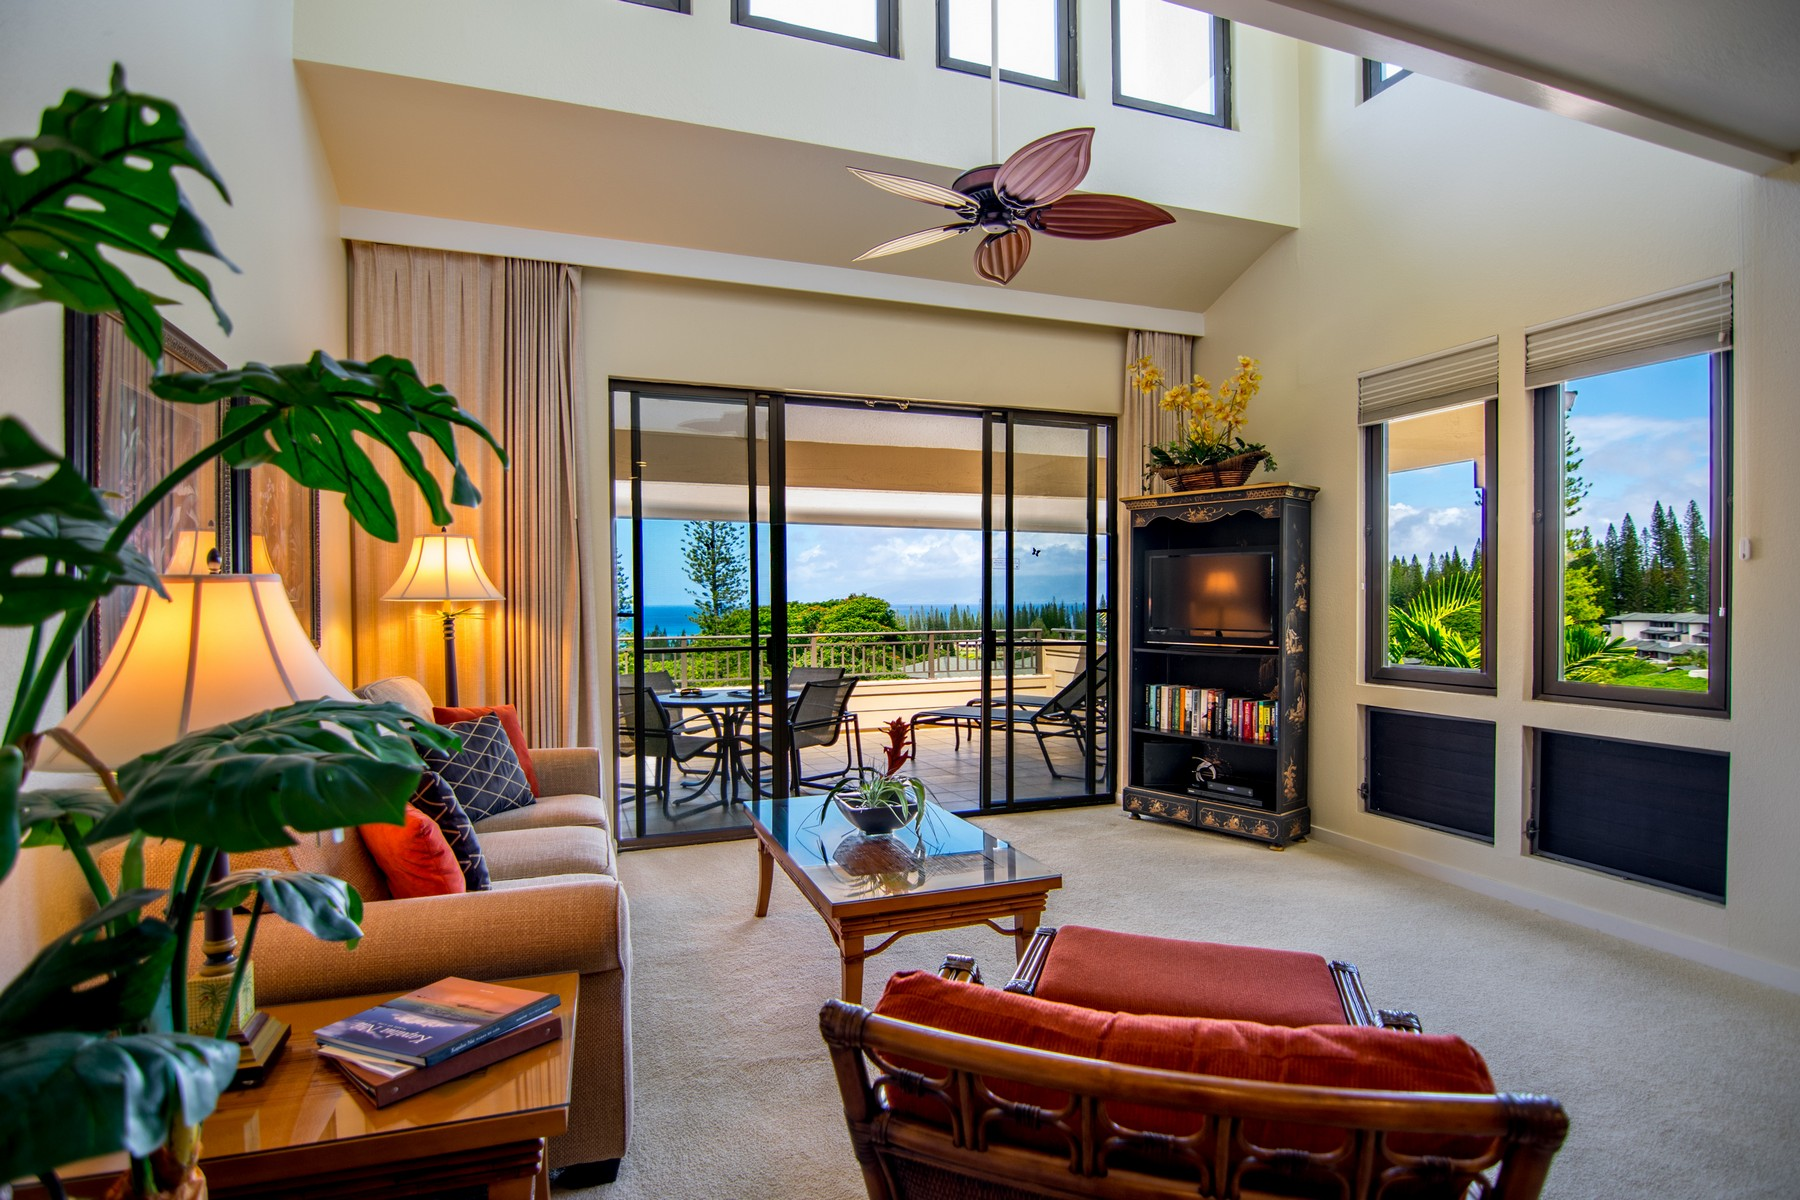 Condominium for Sale at Beautiful Townhouse Golf Villa on Kapalua's Bay Course 500 Kapalua Drive, Kapalua Golf Villas 26T8 Kapalua, Hawaii, 96761 United States